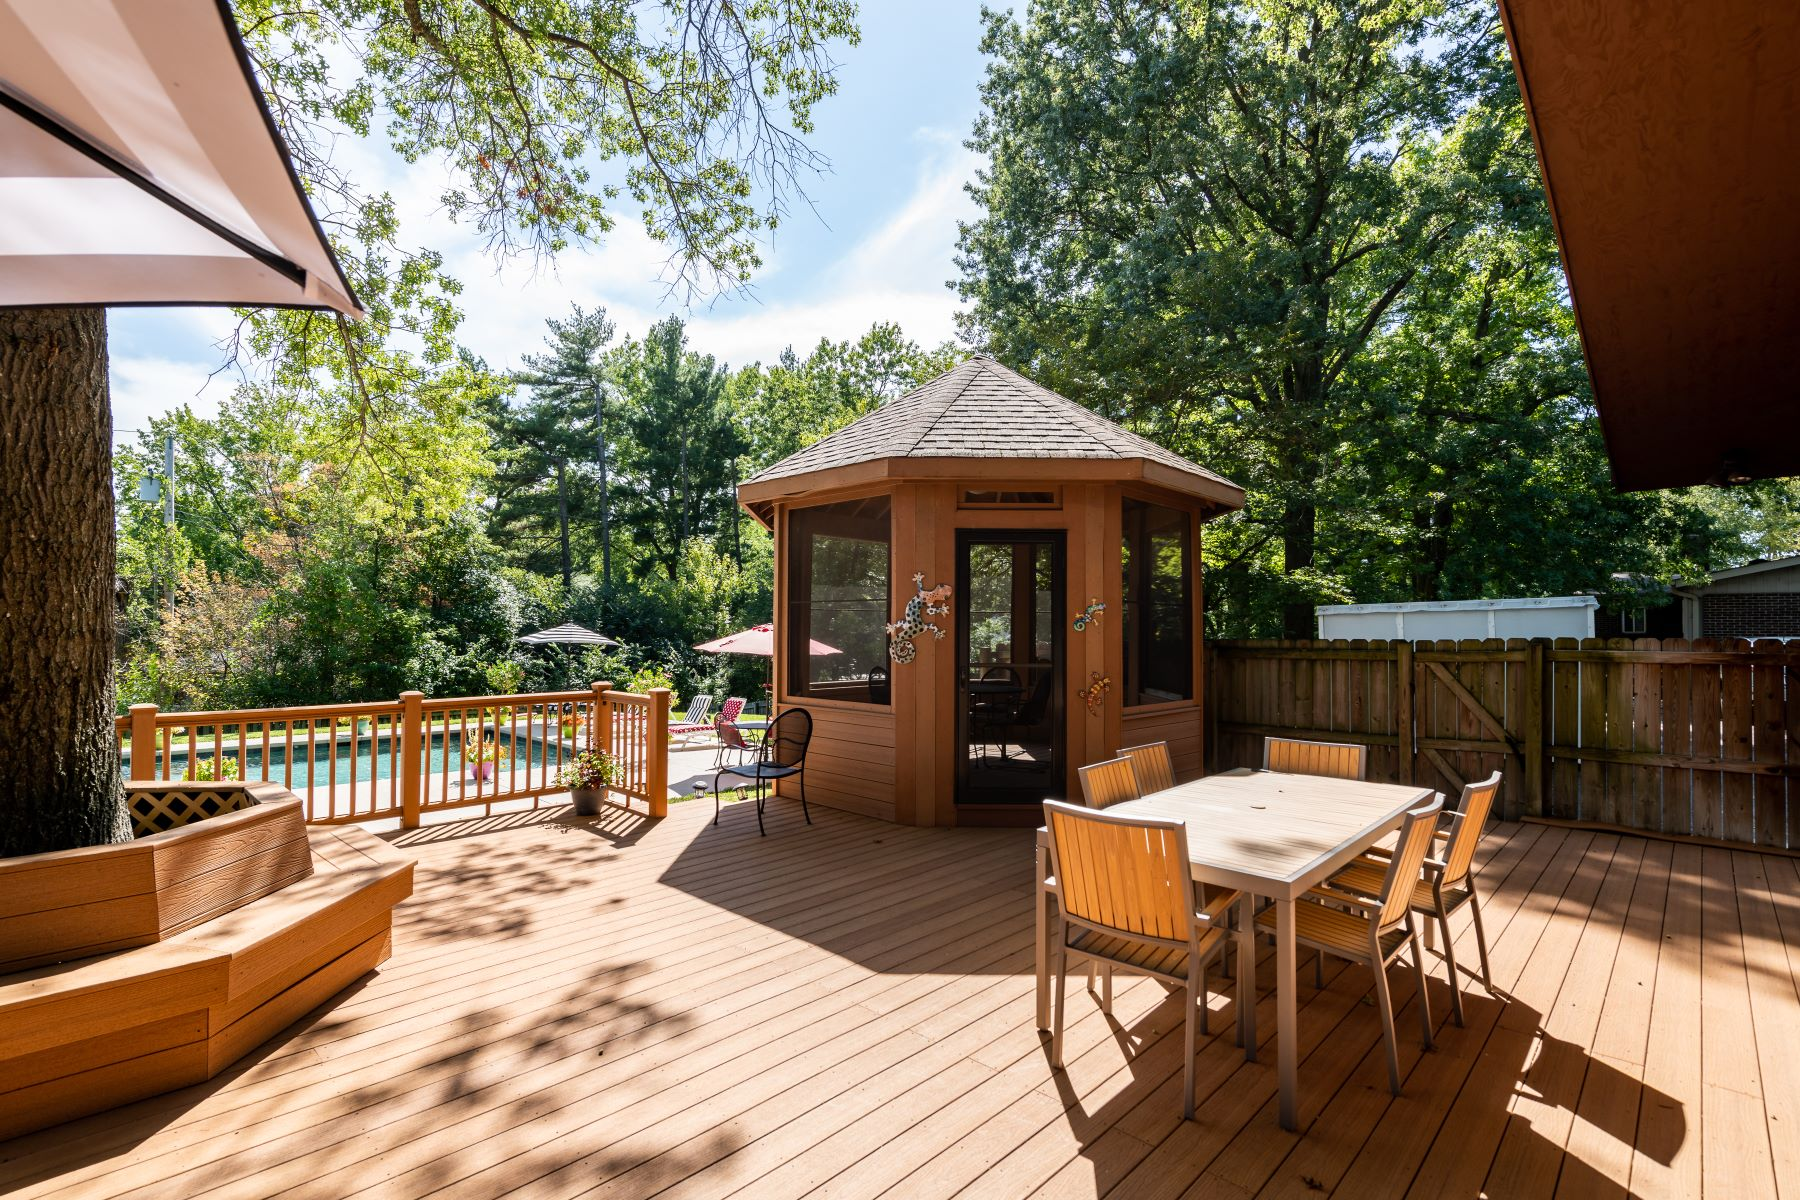 Additional photo for property listing at Beautiful Multi Level Home On A Half-Acre 20 Spoede Woods Drive Creve Coeur, Missouri 63141 United States